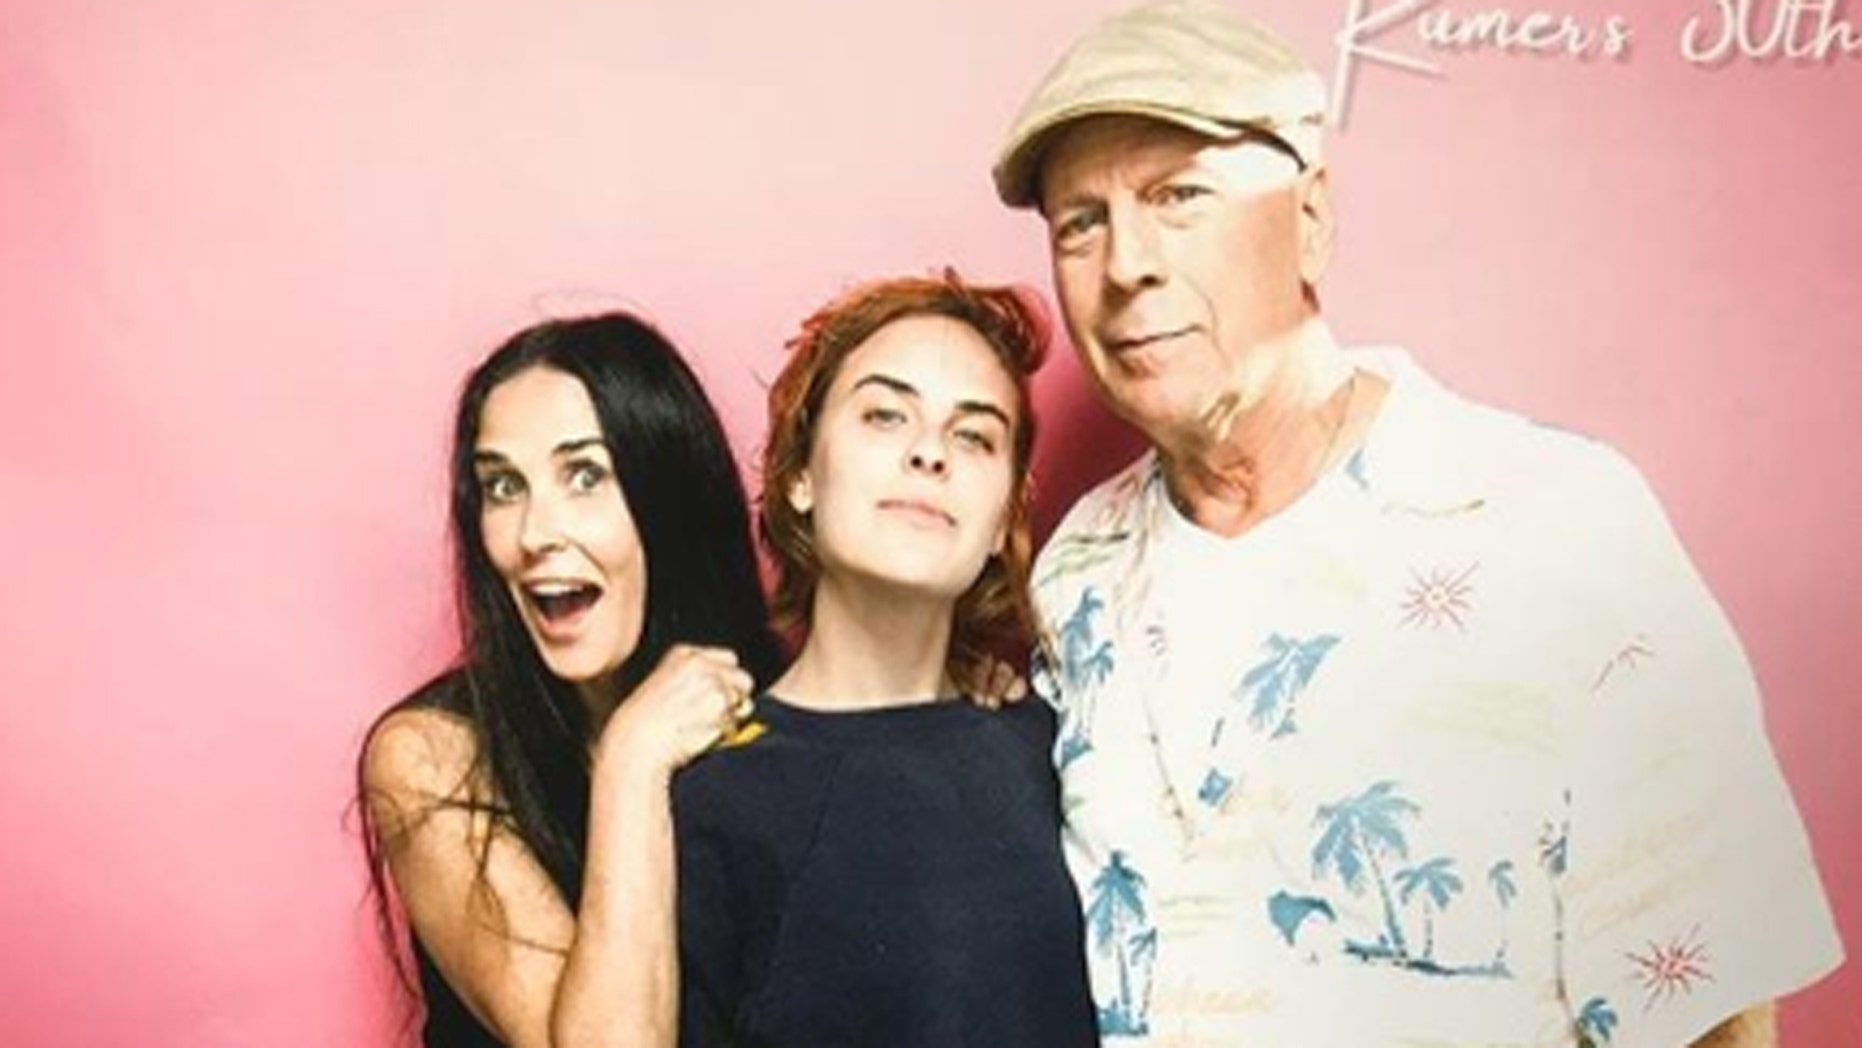 Demi Moore and Bruce Willis reunite to celebrate their daughter's 30th birthday.